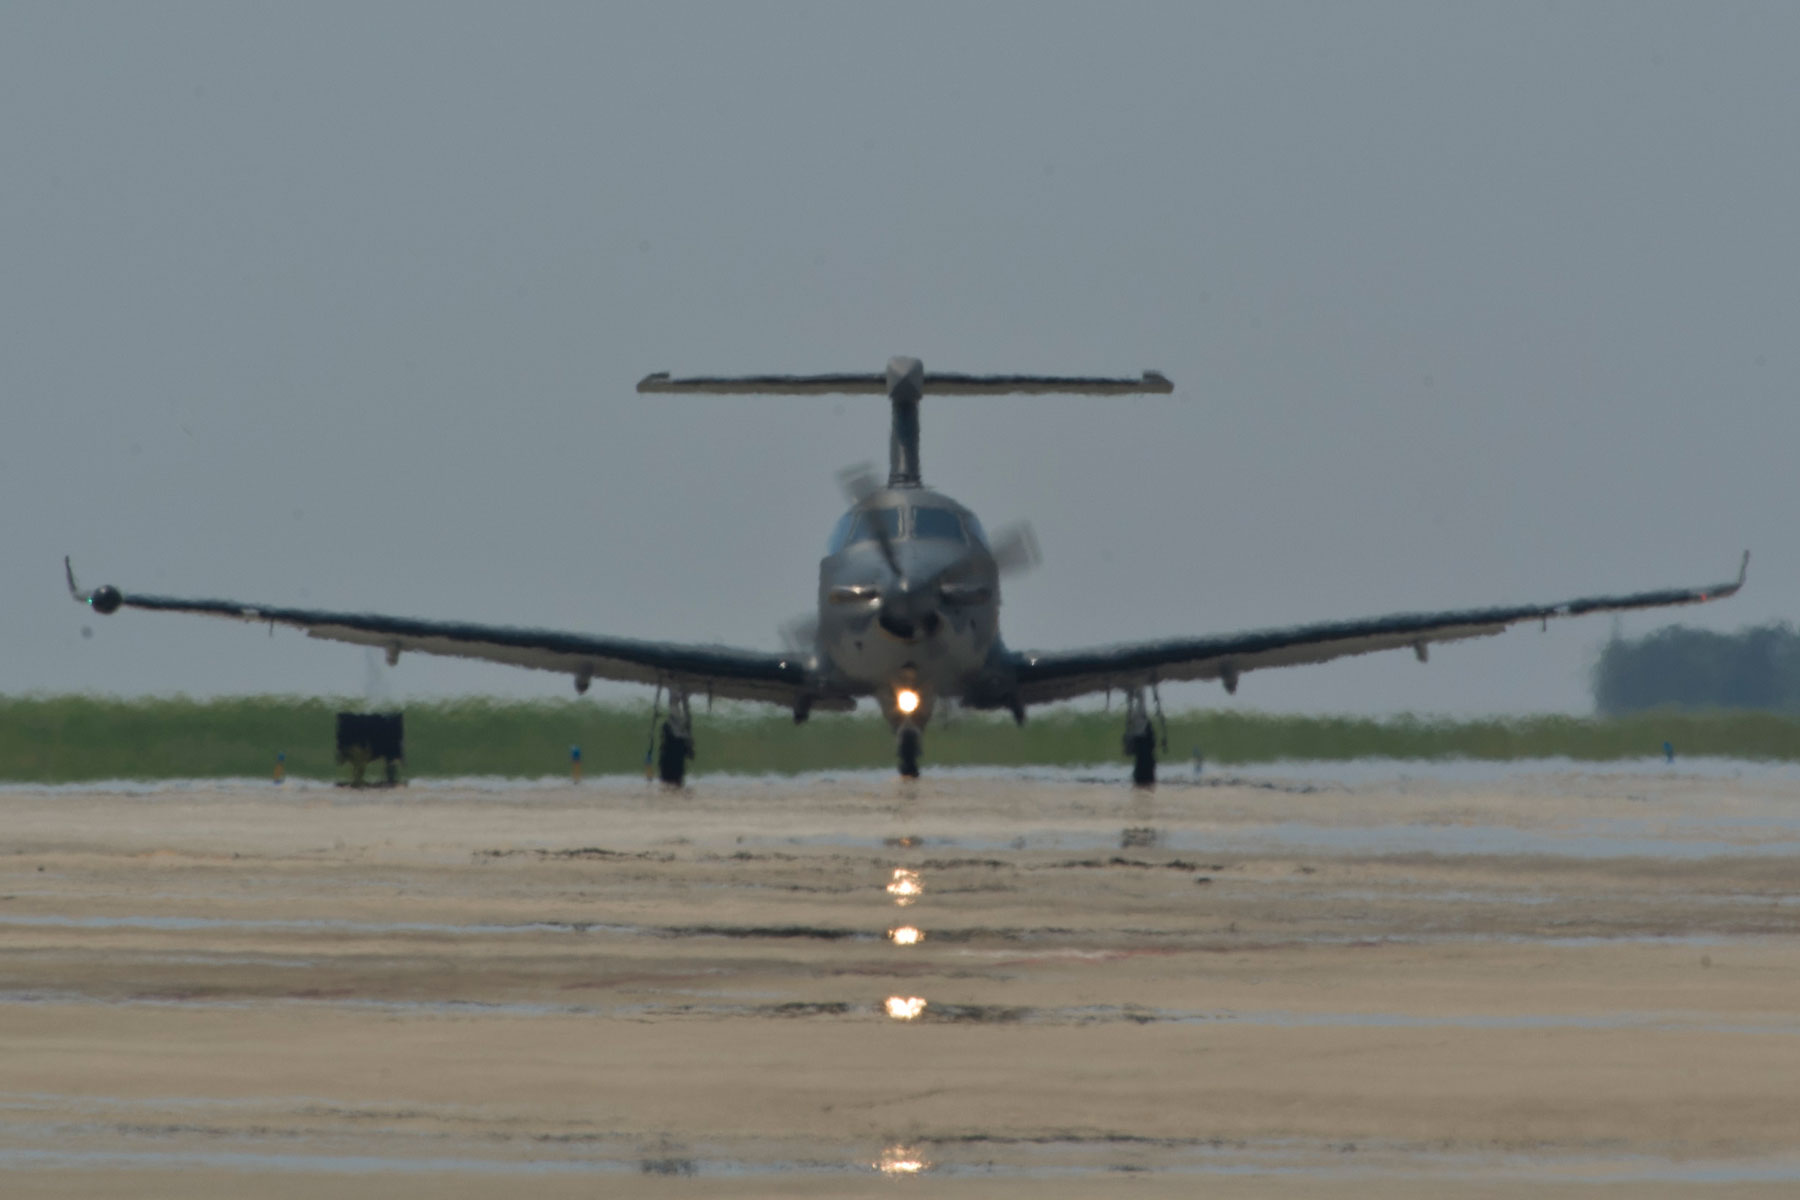 AFSOC's U-28 Proves Its Value in ISR Mission